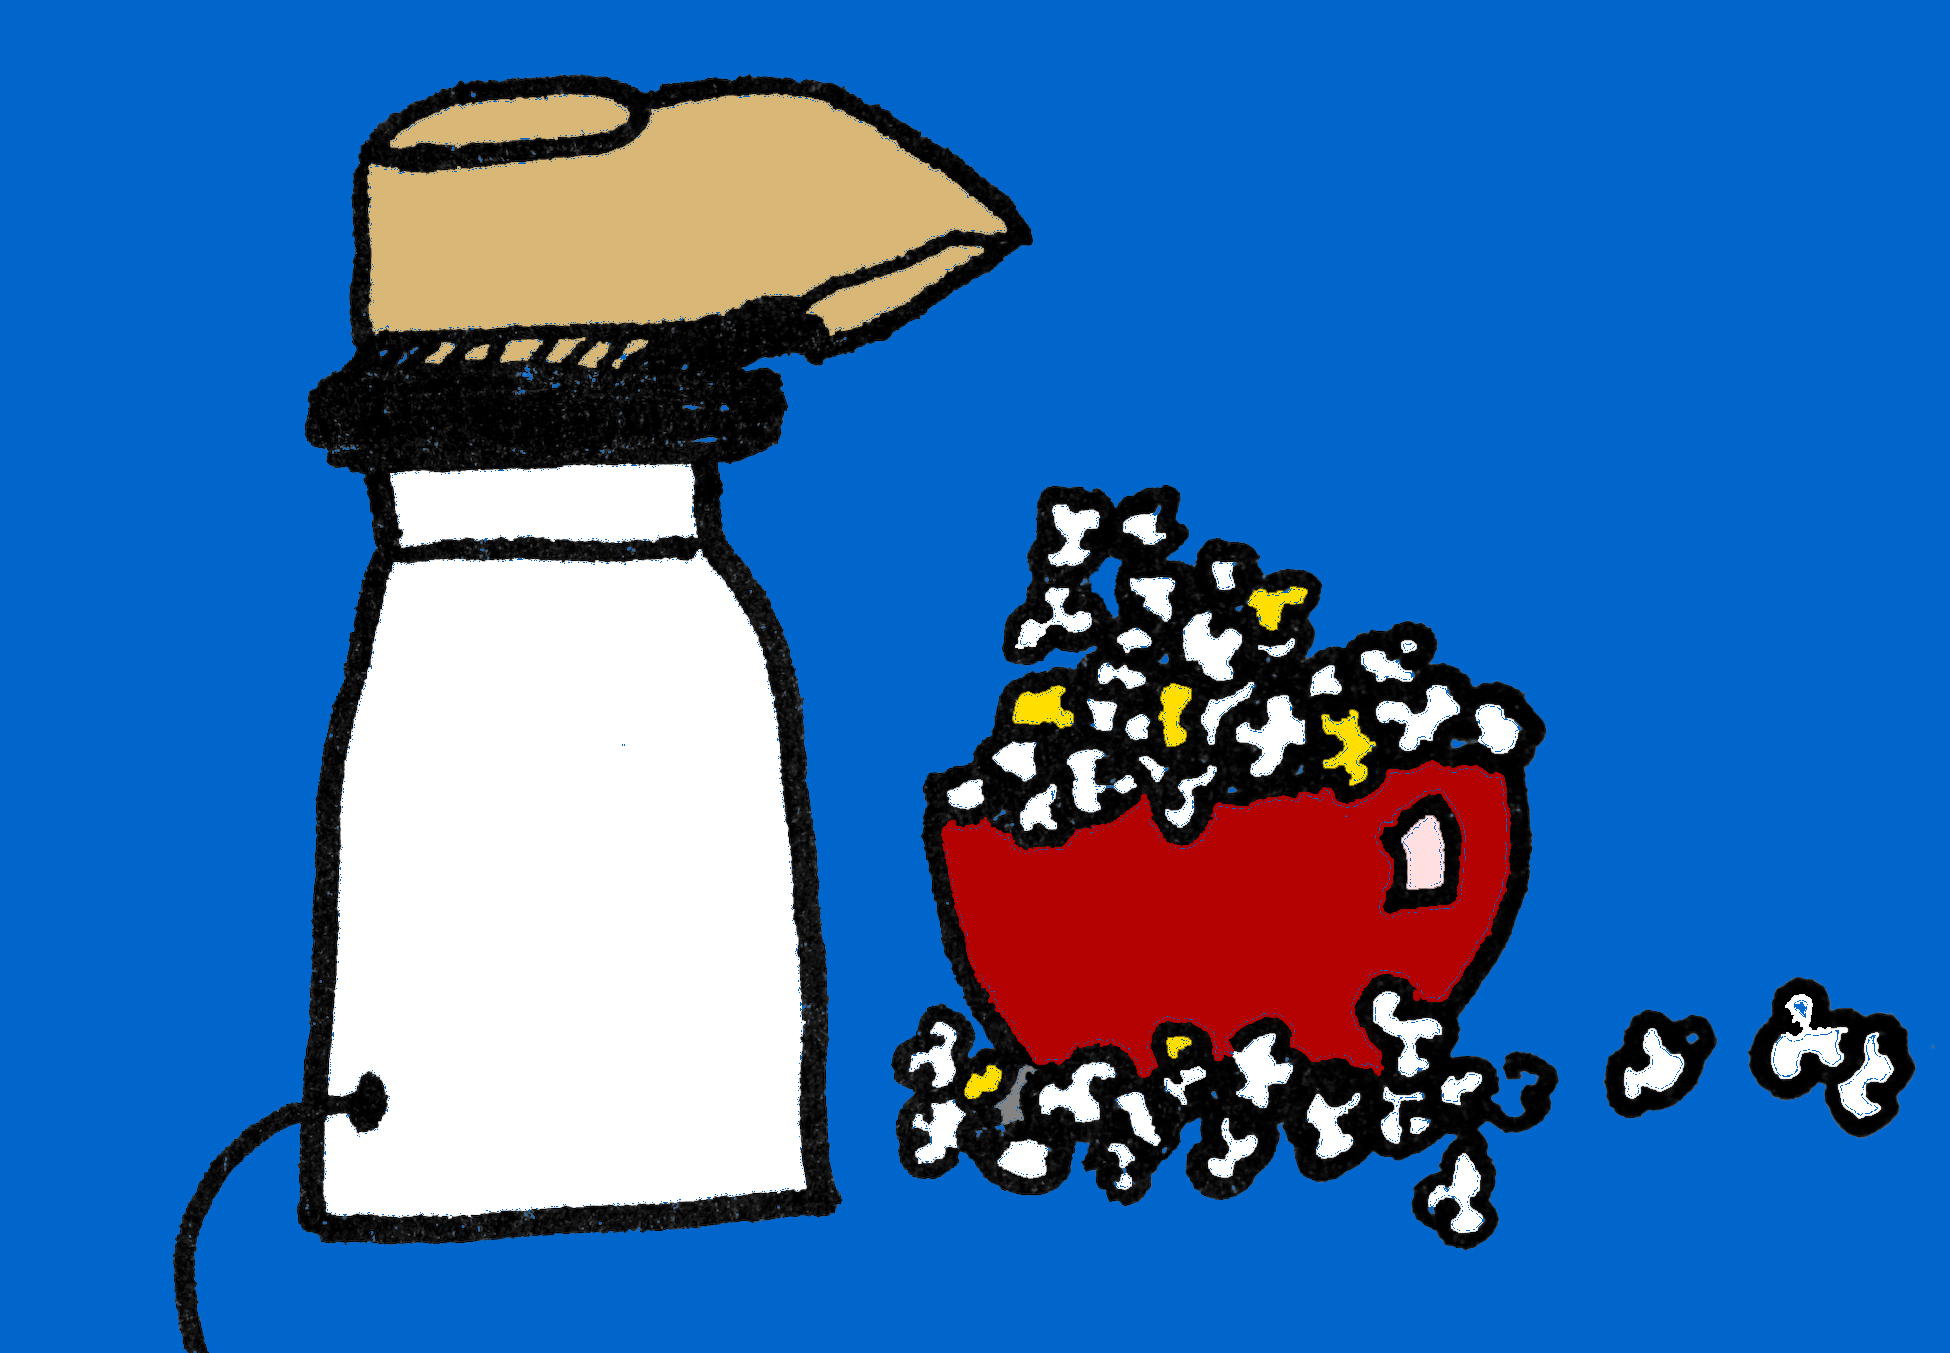 Popcorn and Podcasting